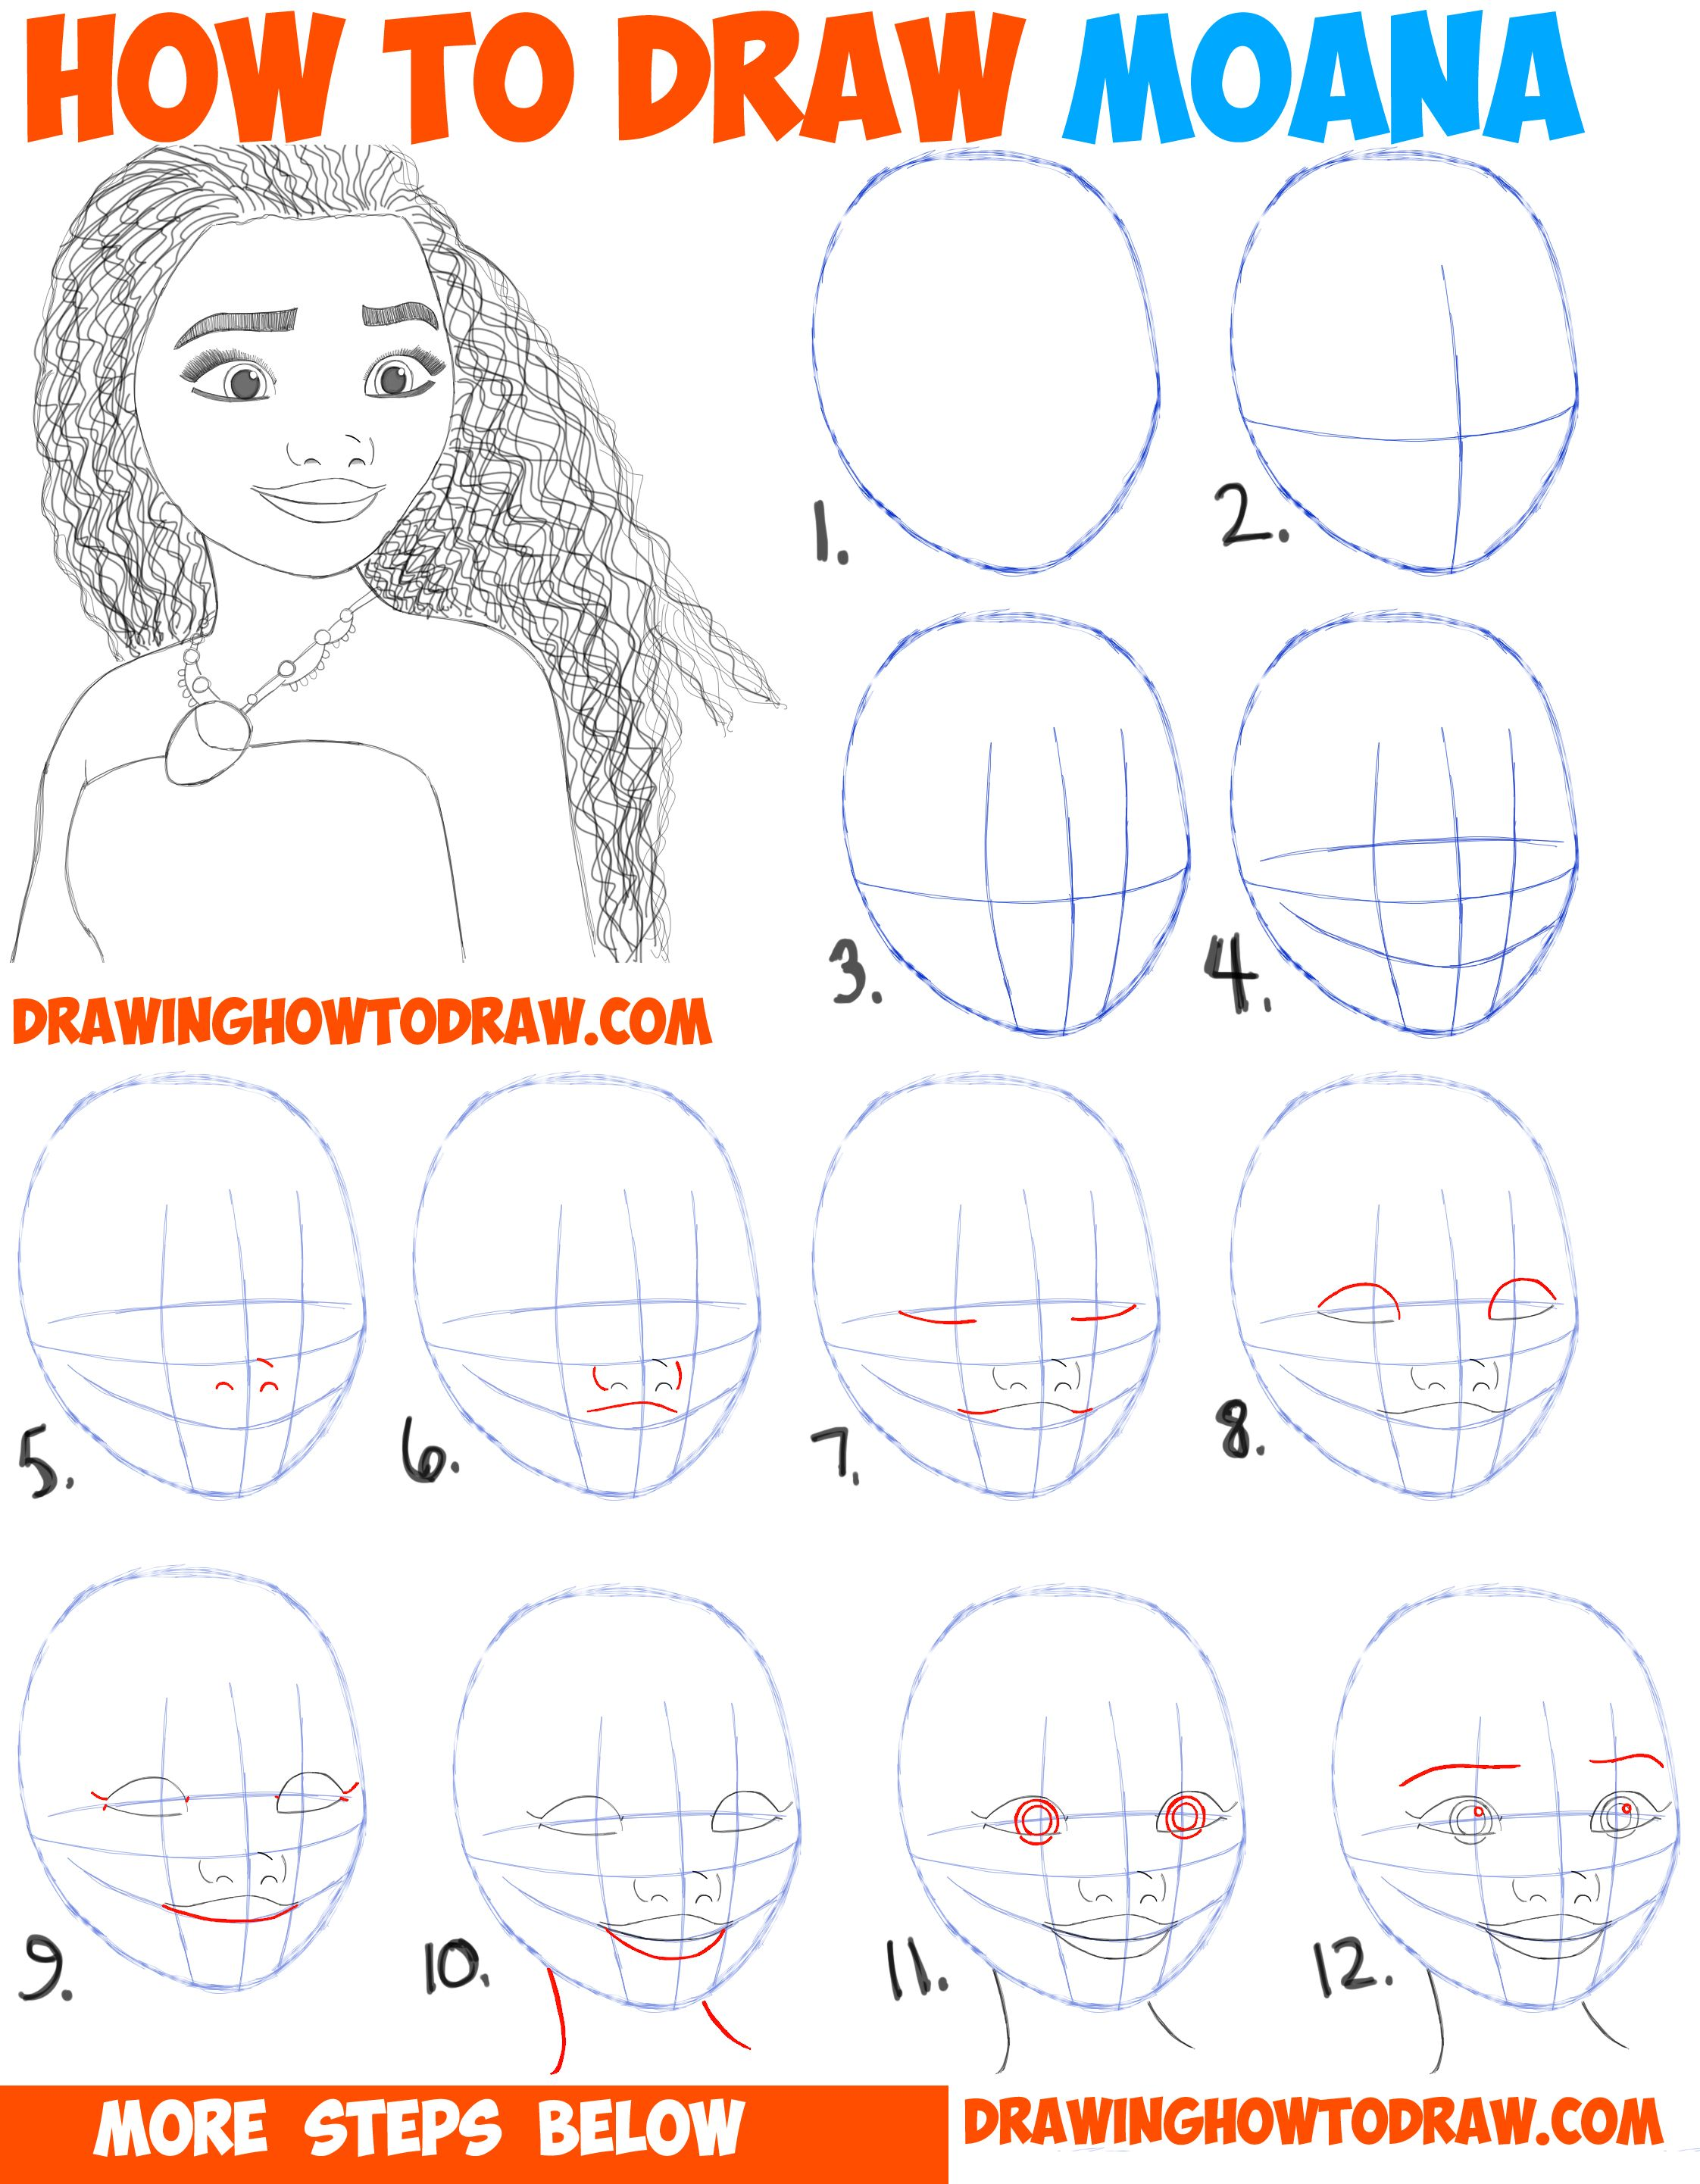 How To Draw Moana Easy Step By Step Drawing Tutorial For